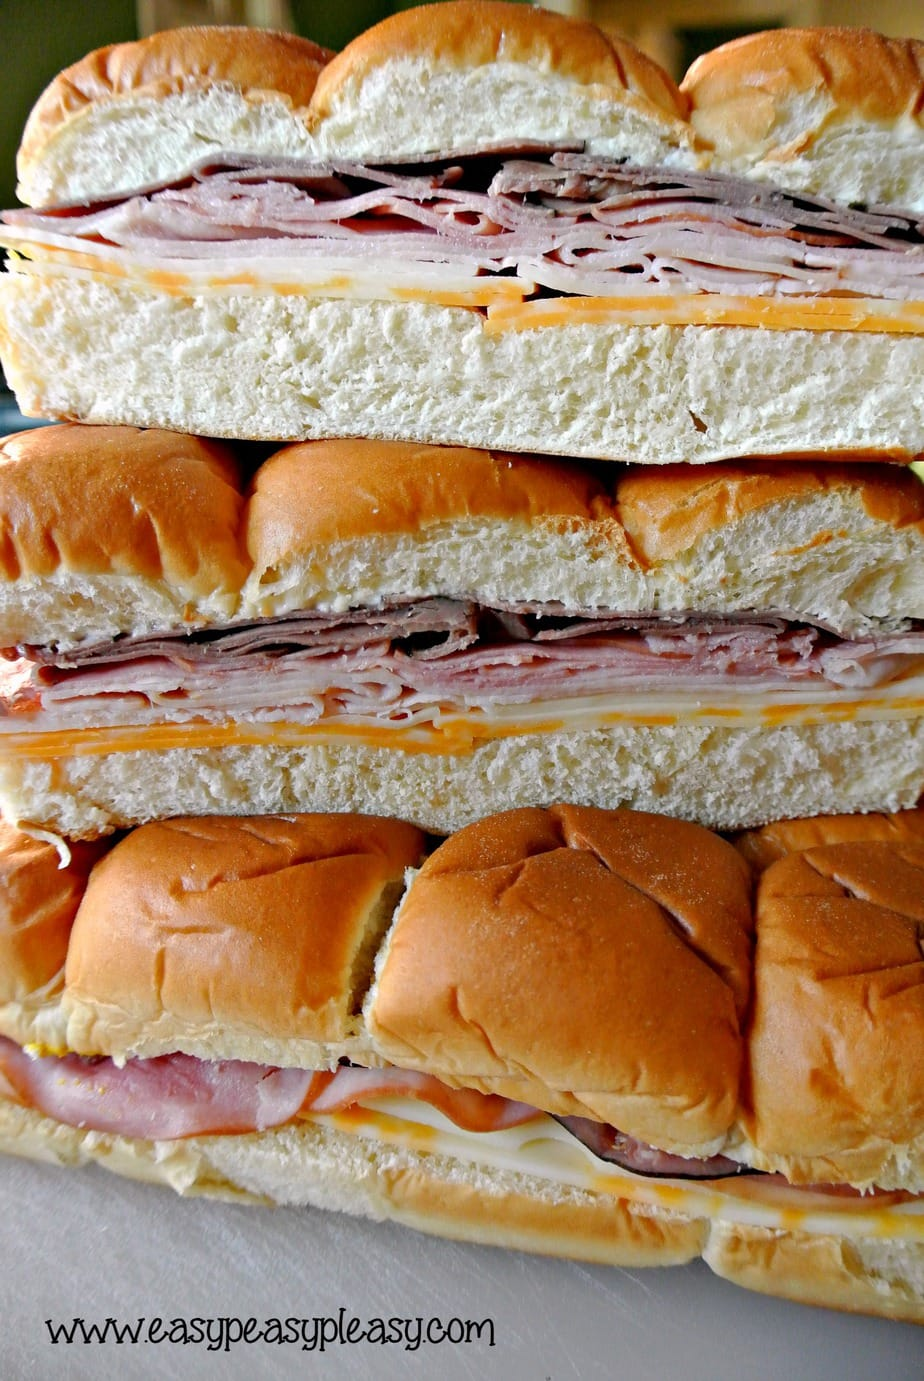 The Easiest To Go Sandwiches for your cooler that require no cleanup. Perfect for the lake, ballpark, beach, camping, and tailgating!